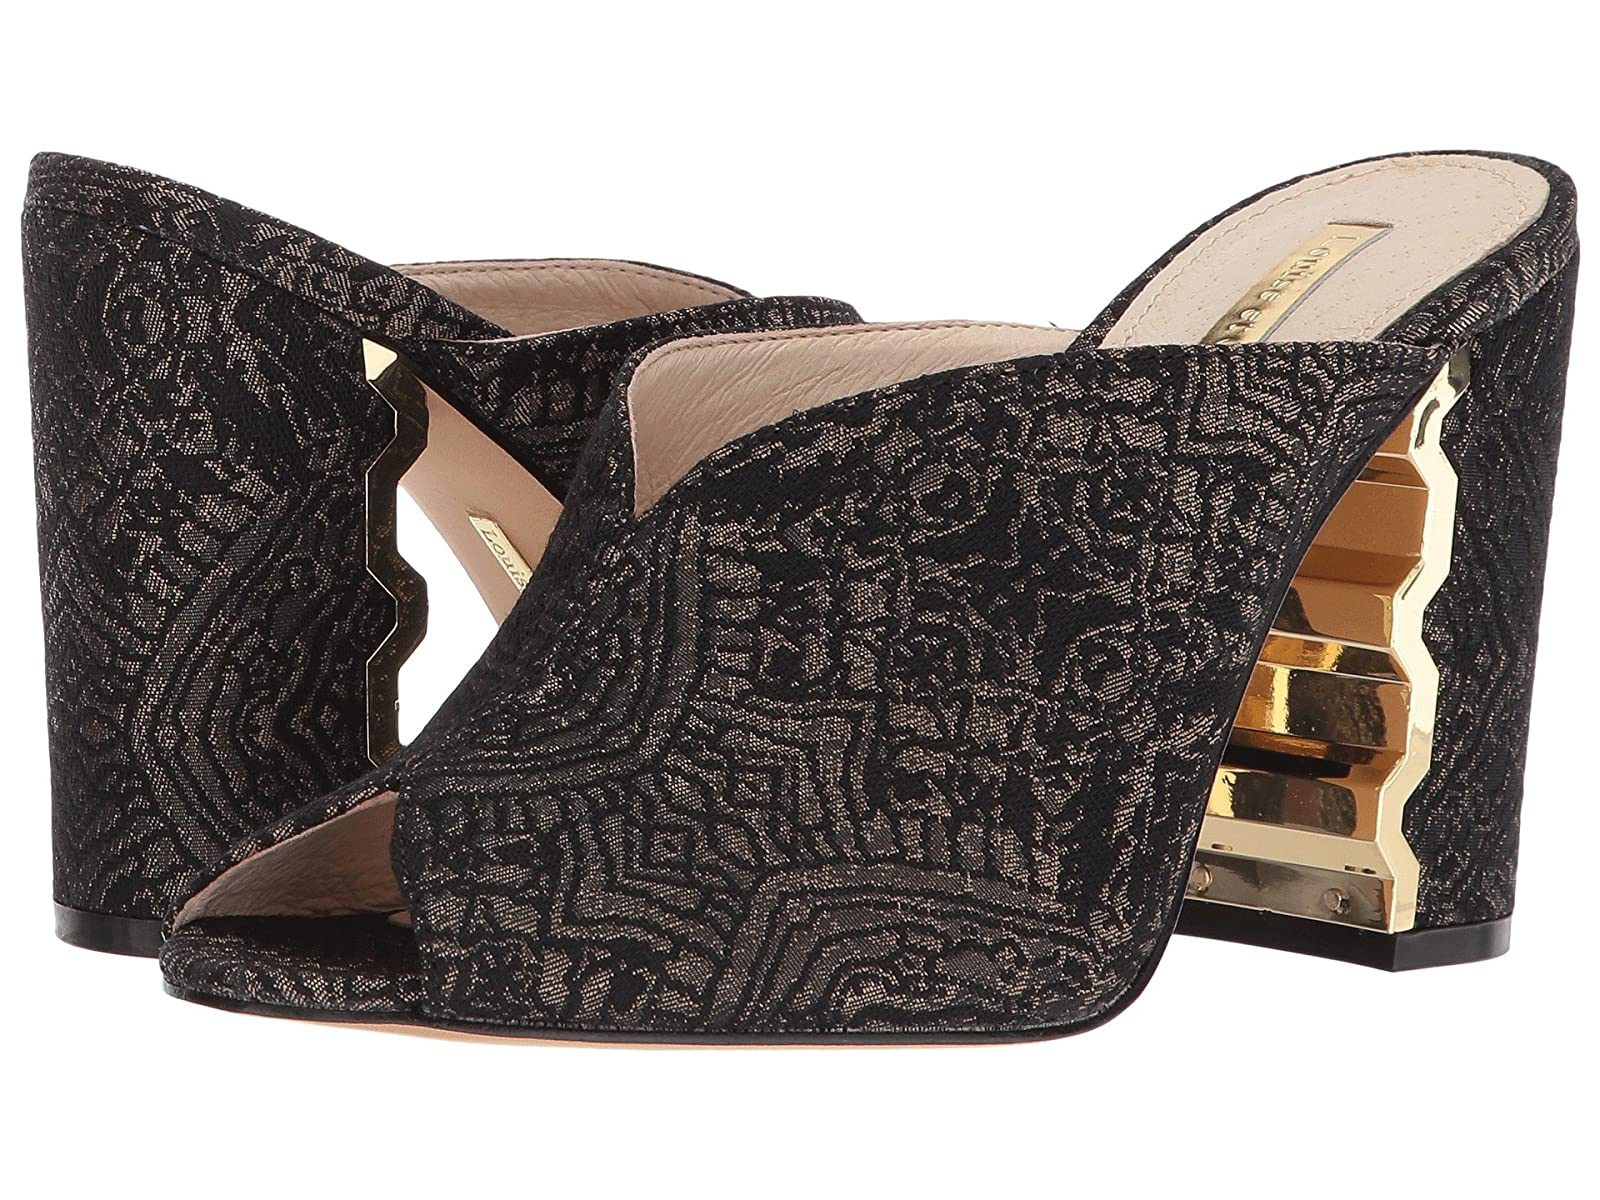 Louise et Cie KorellaCheap and distinctive eye-catching shoes